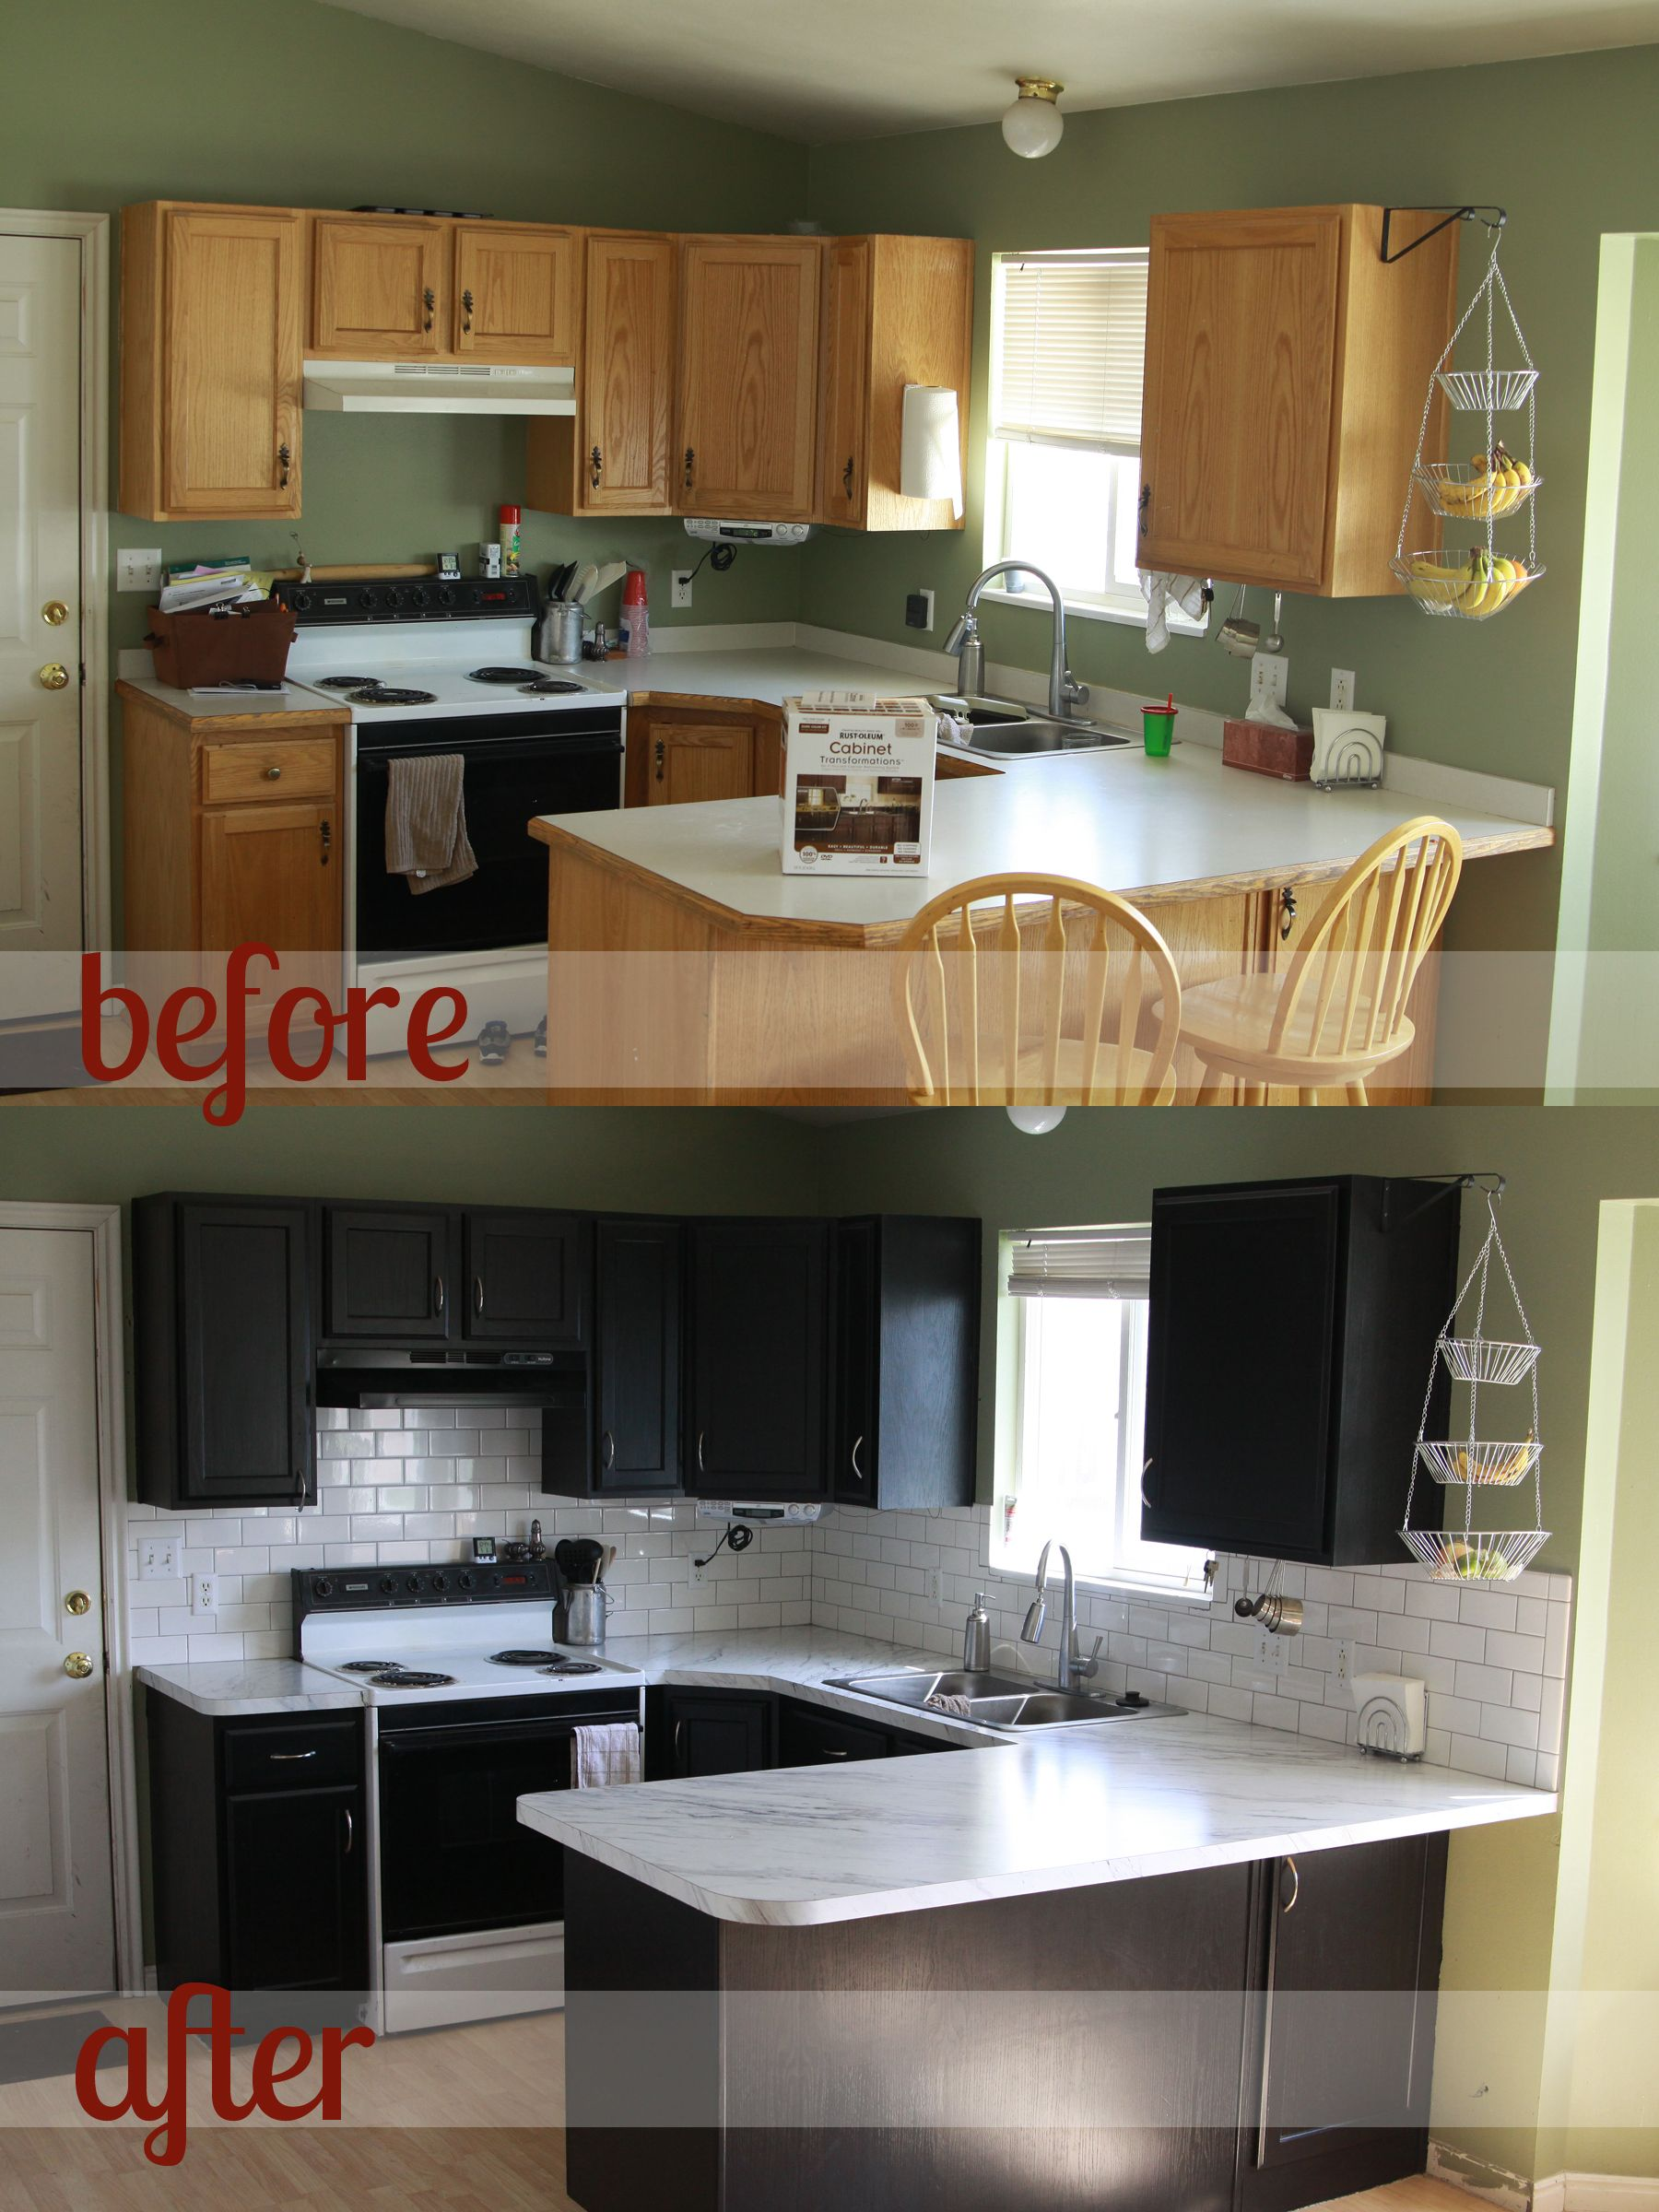 New Kitchen Cabinets Before After Kitchen Transformation Part 2 And Review Of Rustoleum Cabinet